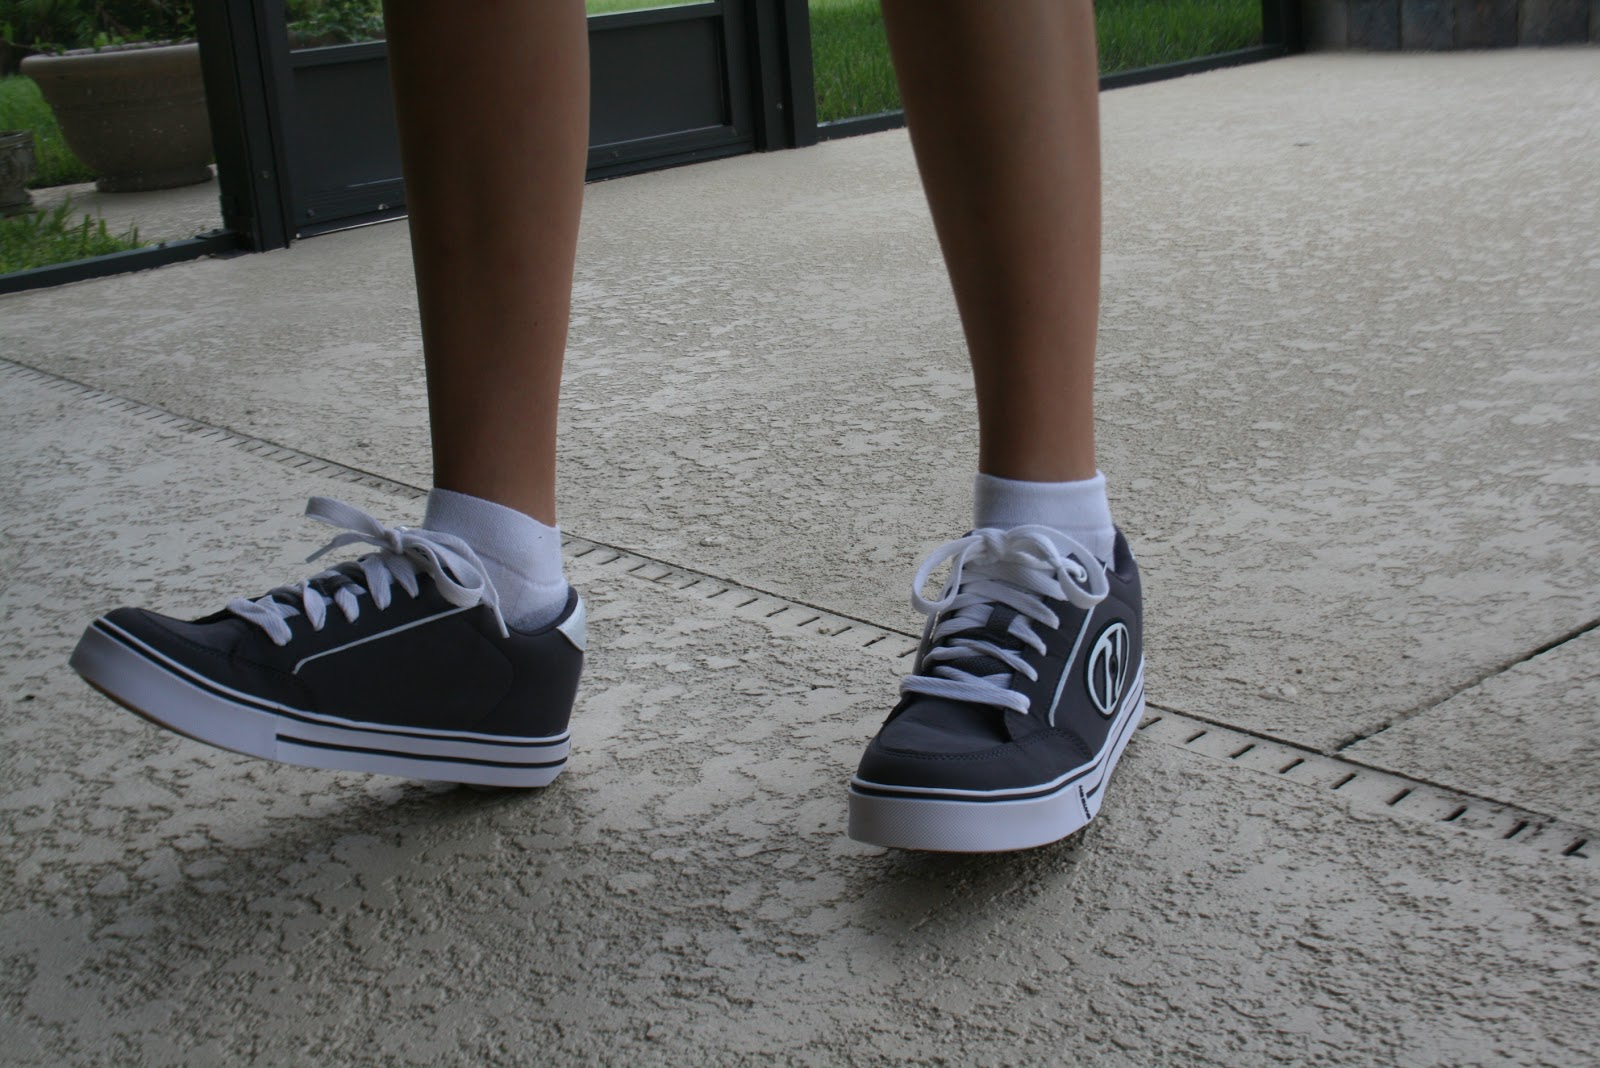 Heely skate shoes reviews - Save